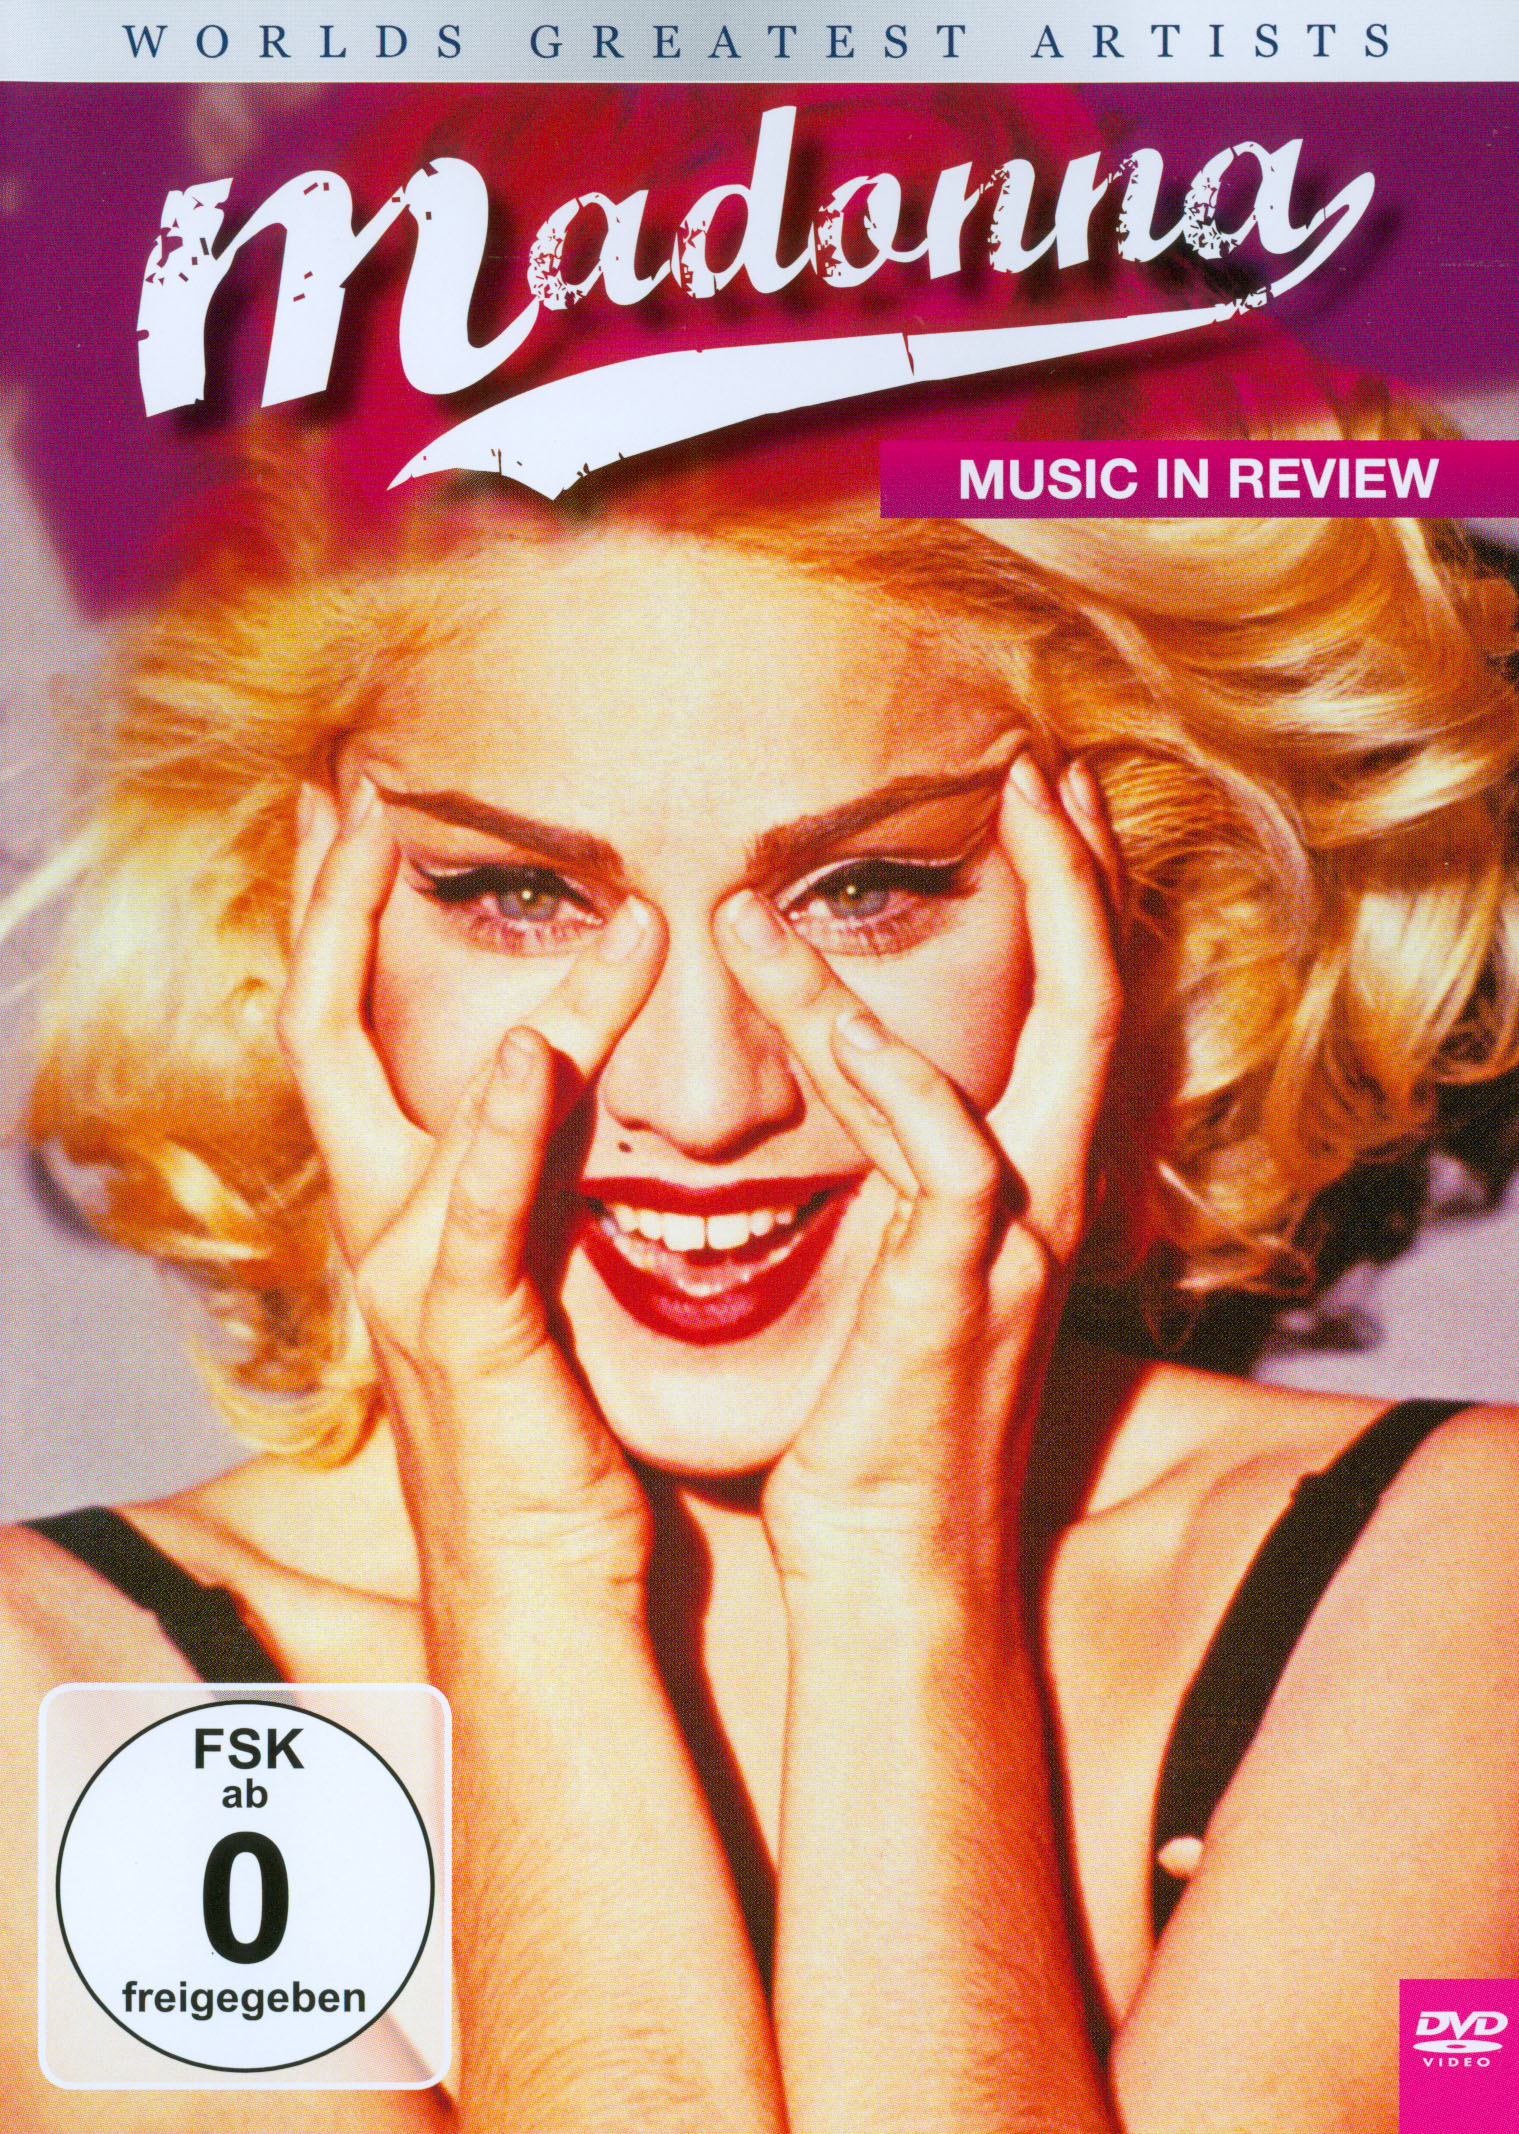 Madonna: World's Greatest Artists - Music in Review